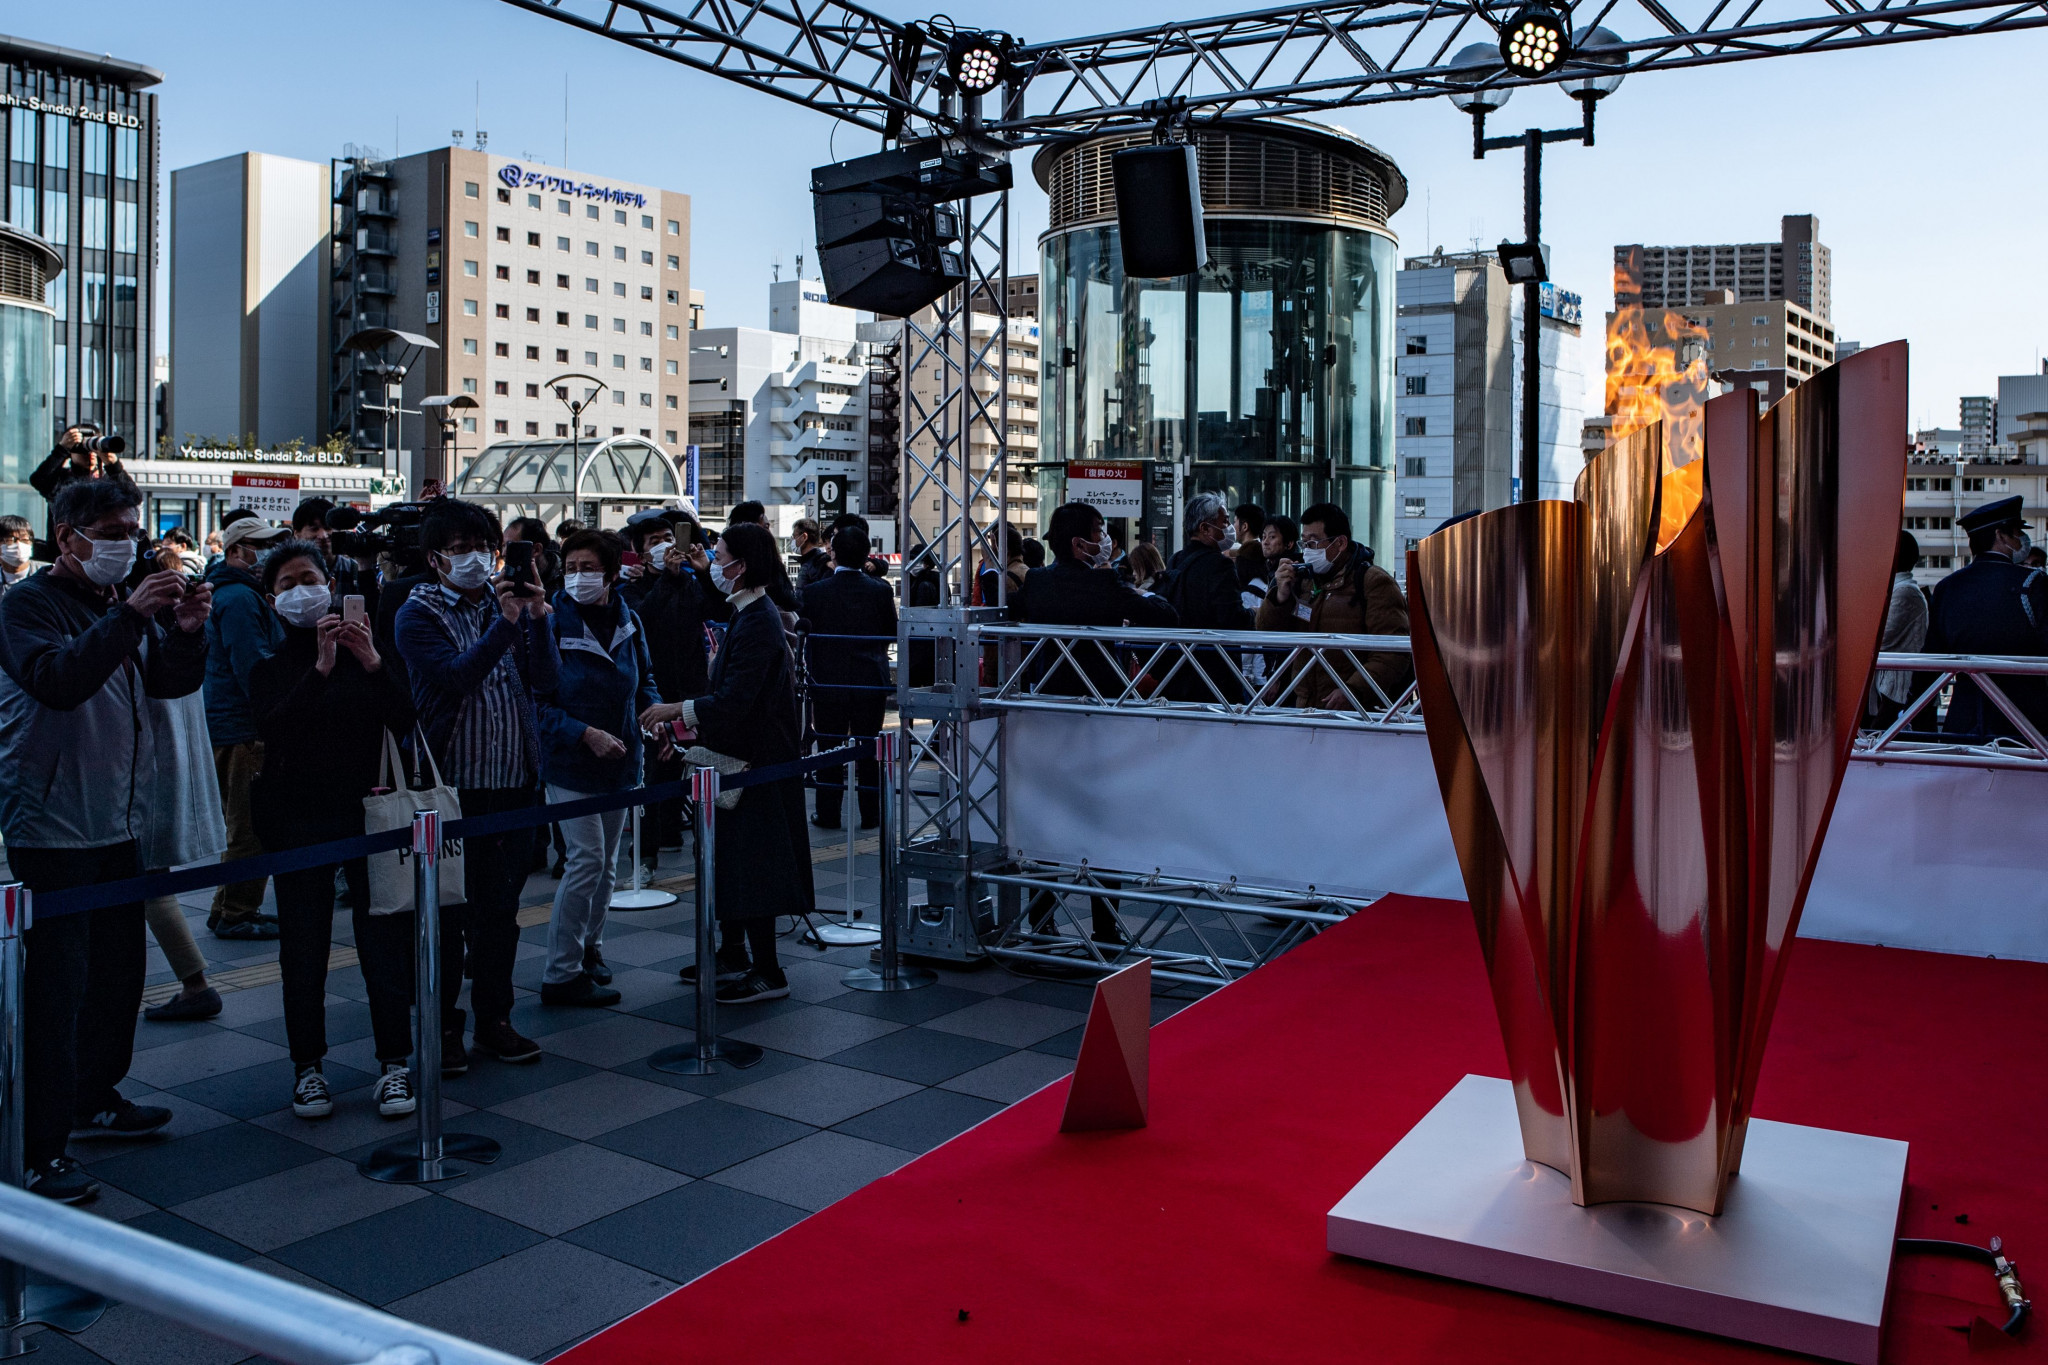 The Olympic Flame has been on display in Sendai ©Getty Images